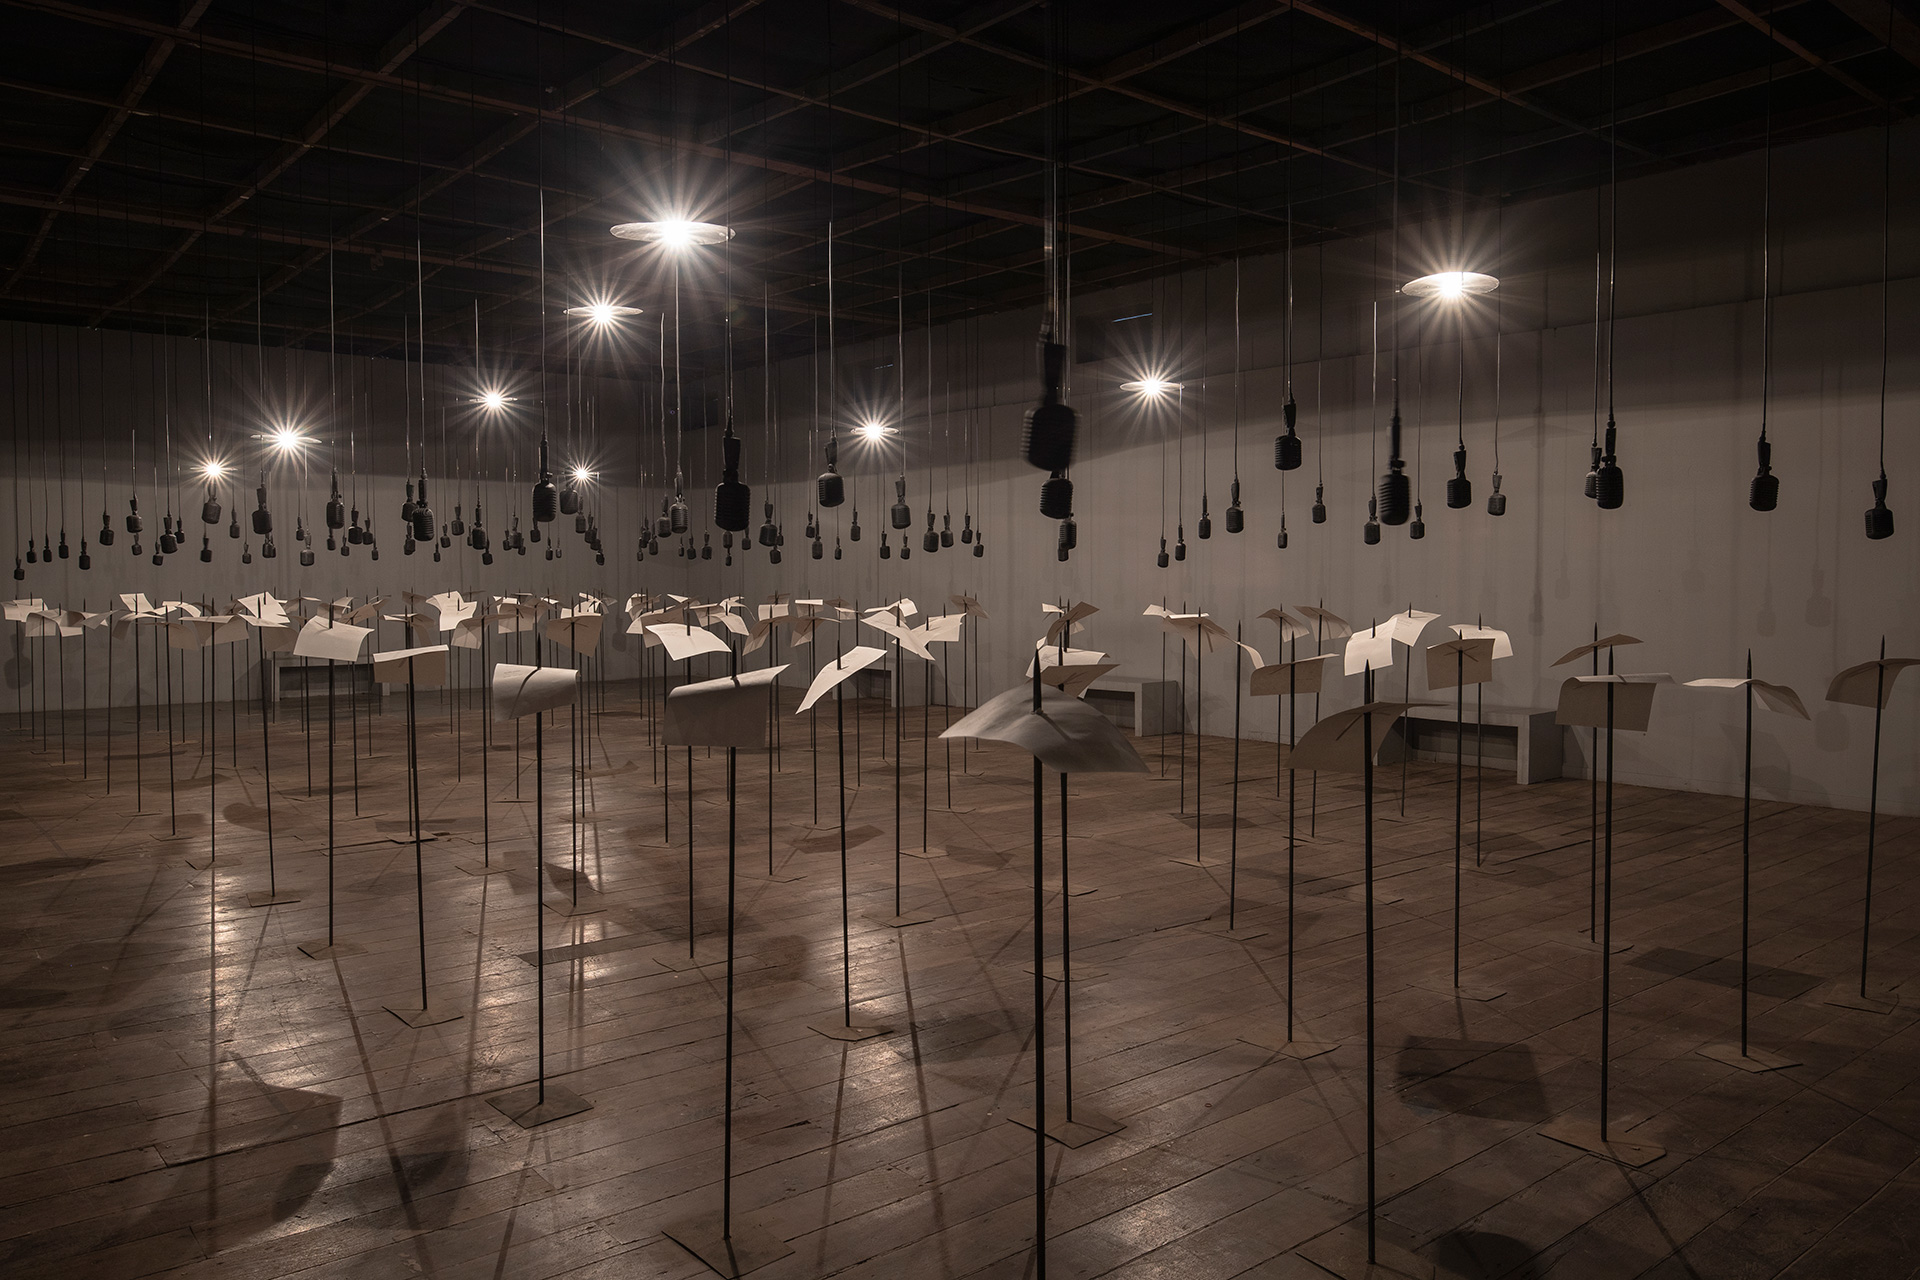 Shilpa Gupta's installation <em>For, In Your Tongue I Cannot Hide - 100 Jailed Poets</em> at the Kochi-Muziris Biennale| For, In Your Tongue I Cannot Hide - 100 Jailed Poets| Shilpa Gupta| STIR